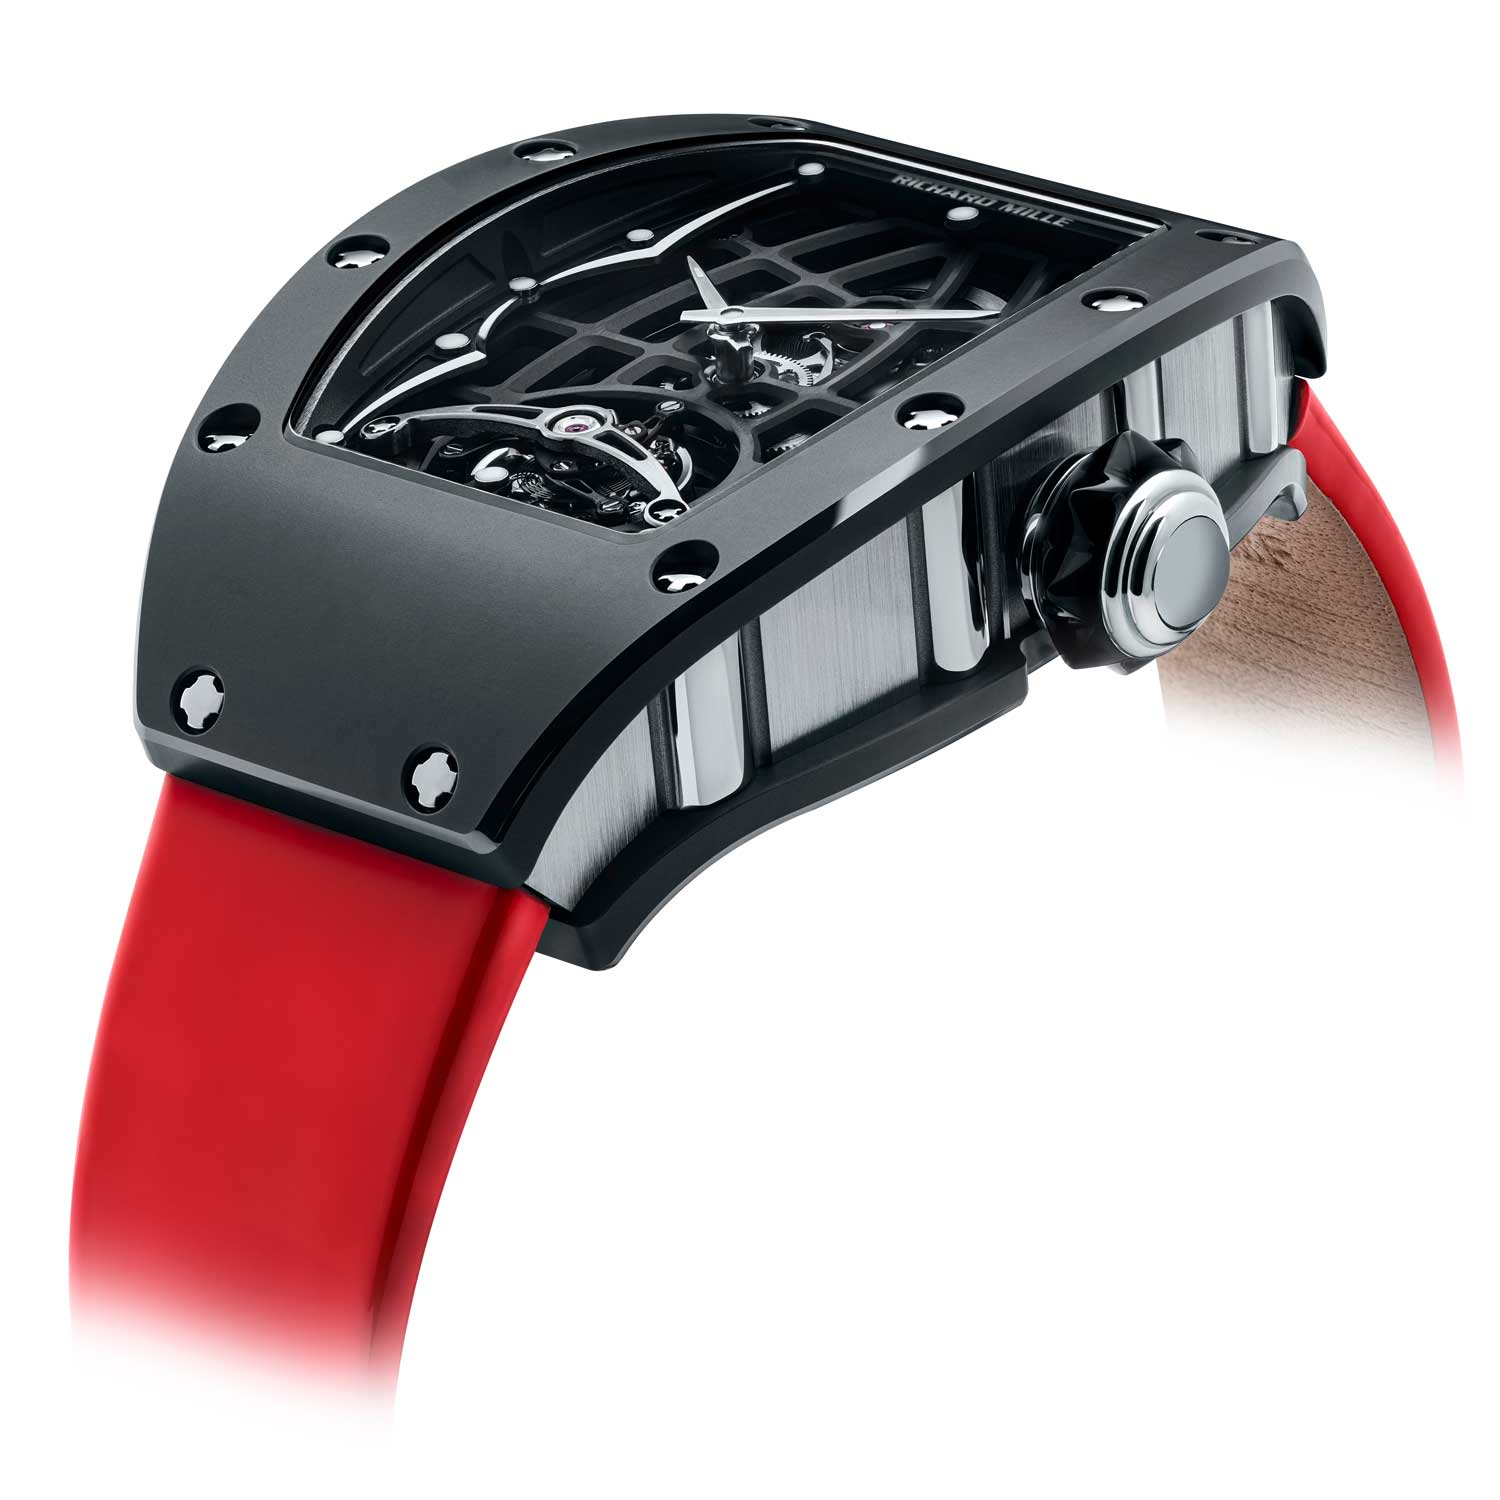 The case on the RM 74-01is made of Cermet that combines the lightness of titanium with the hardness of ceramic